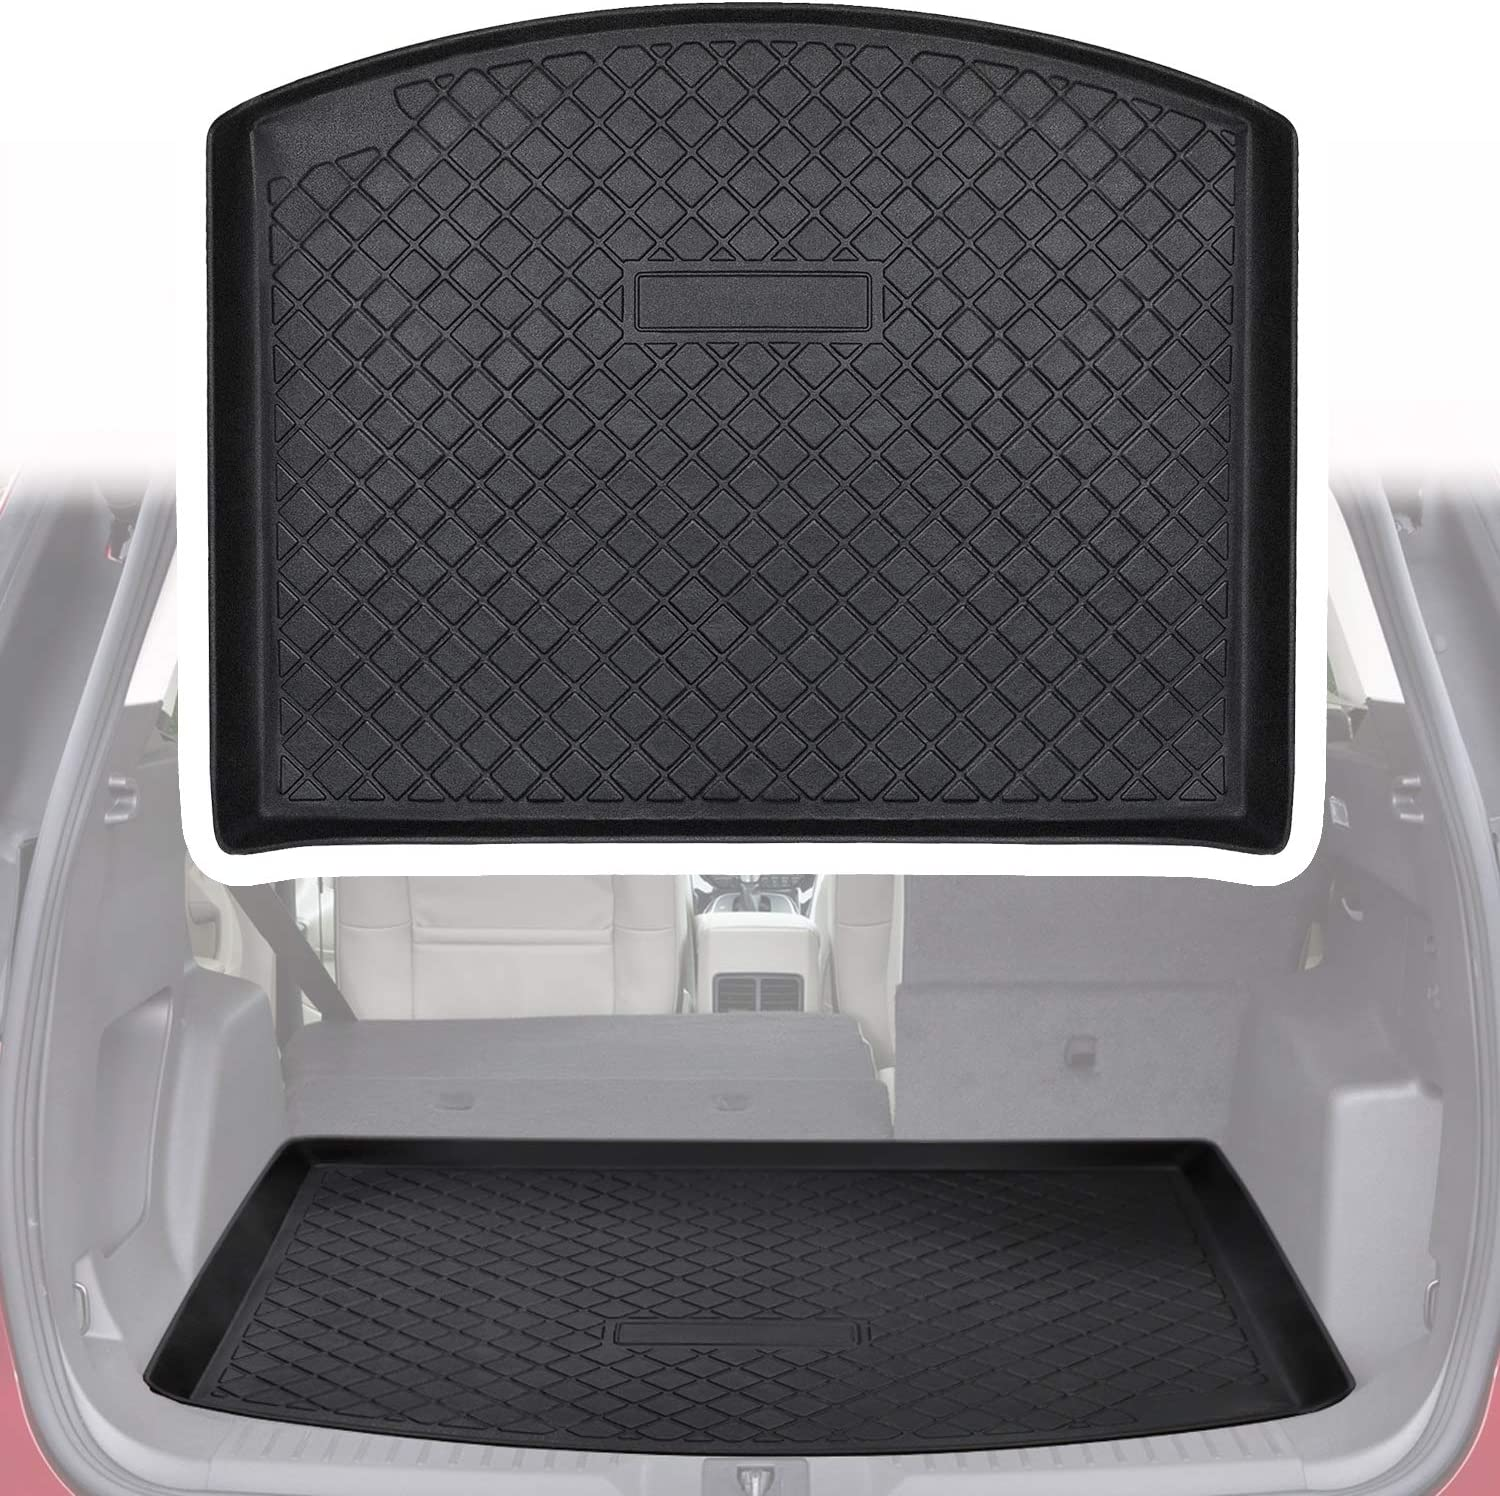 Yoursme Cargo Liner Rear Cargo Tray Trunk Floor Mat Waterproof Protector for Ford Escape 2013-2019